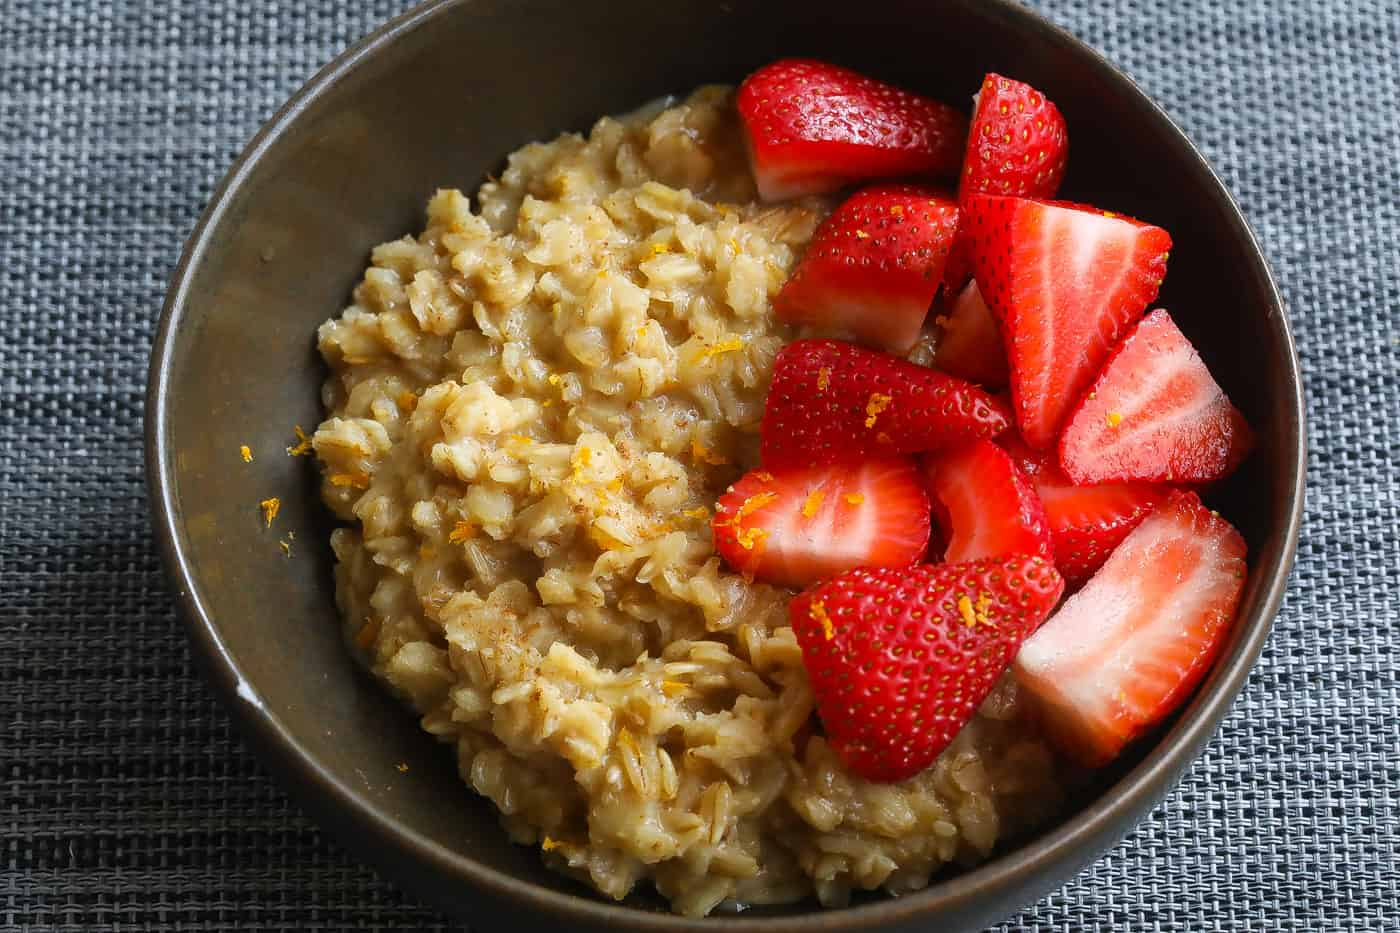 oatmeal topped with strawberries in brown bowl